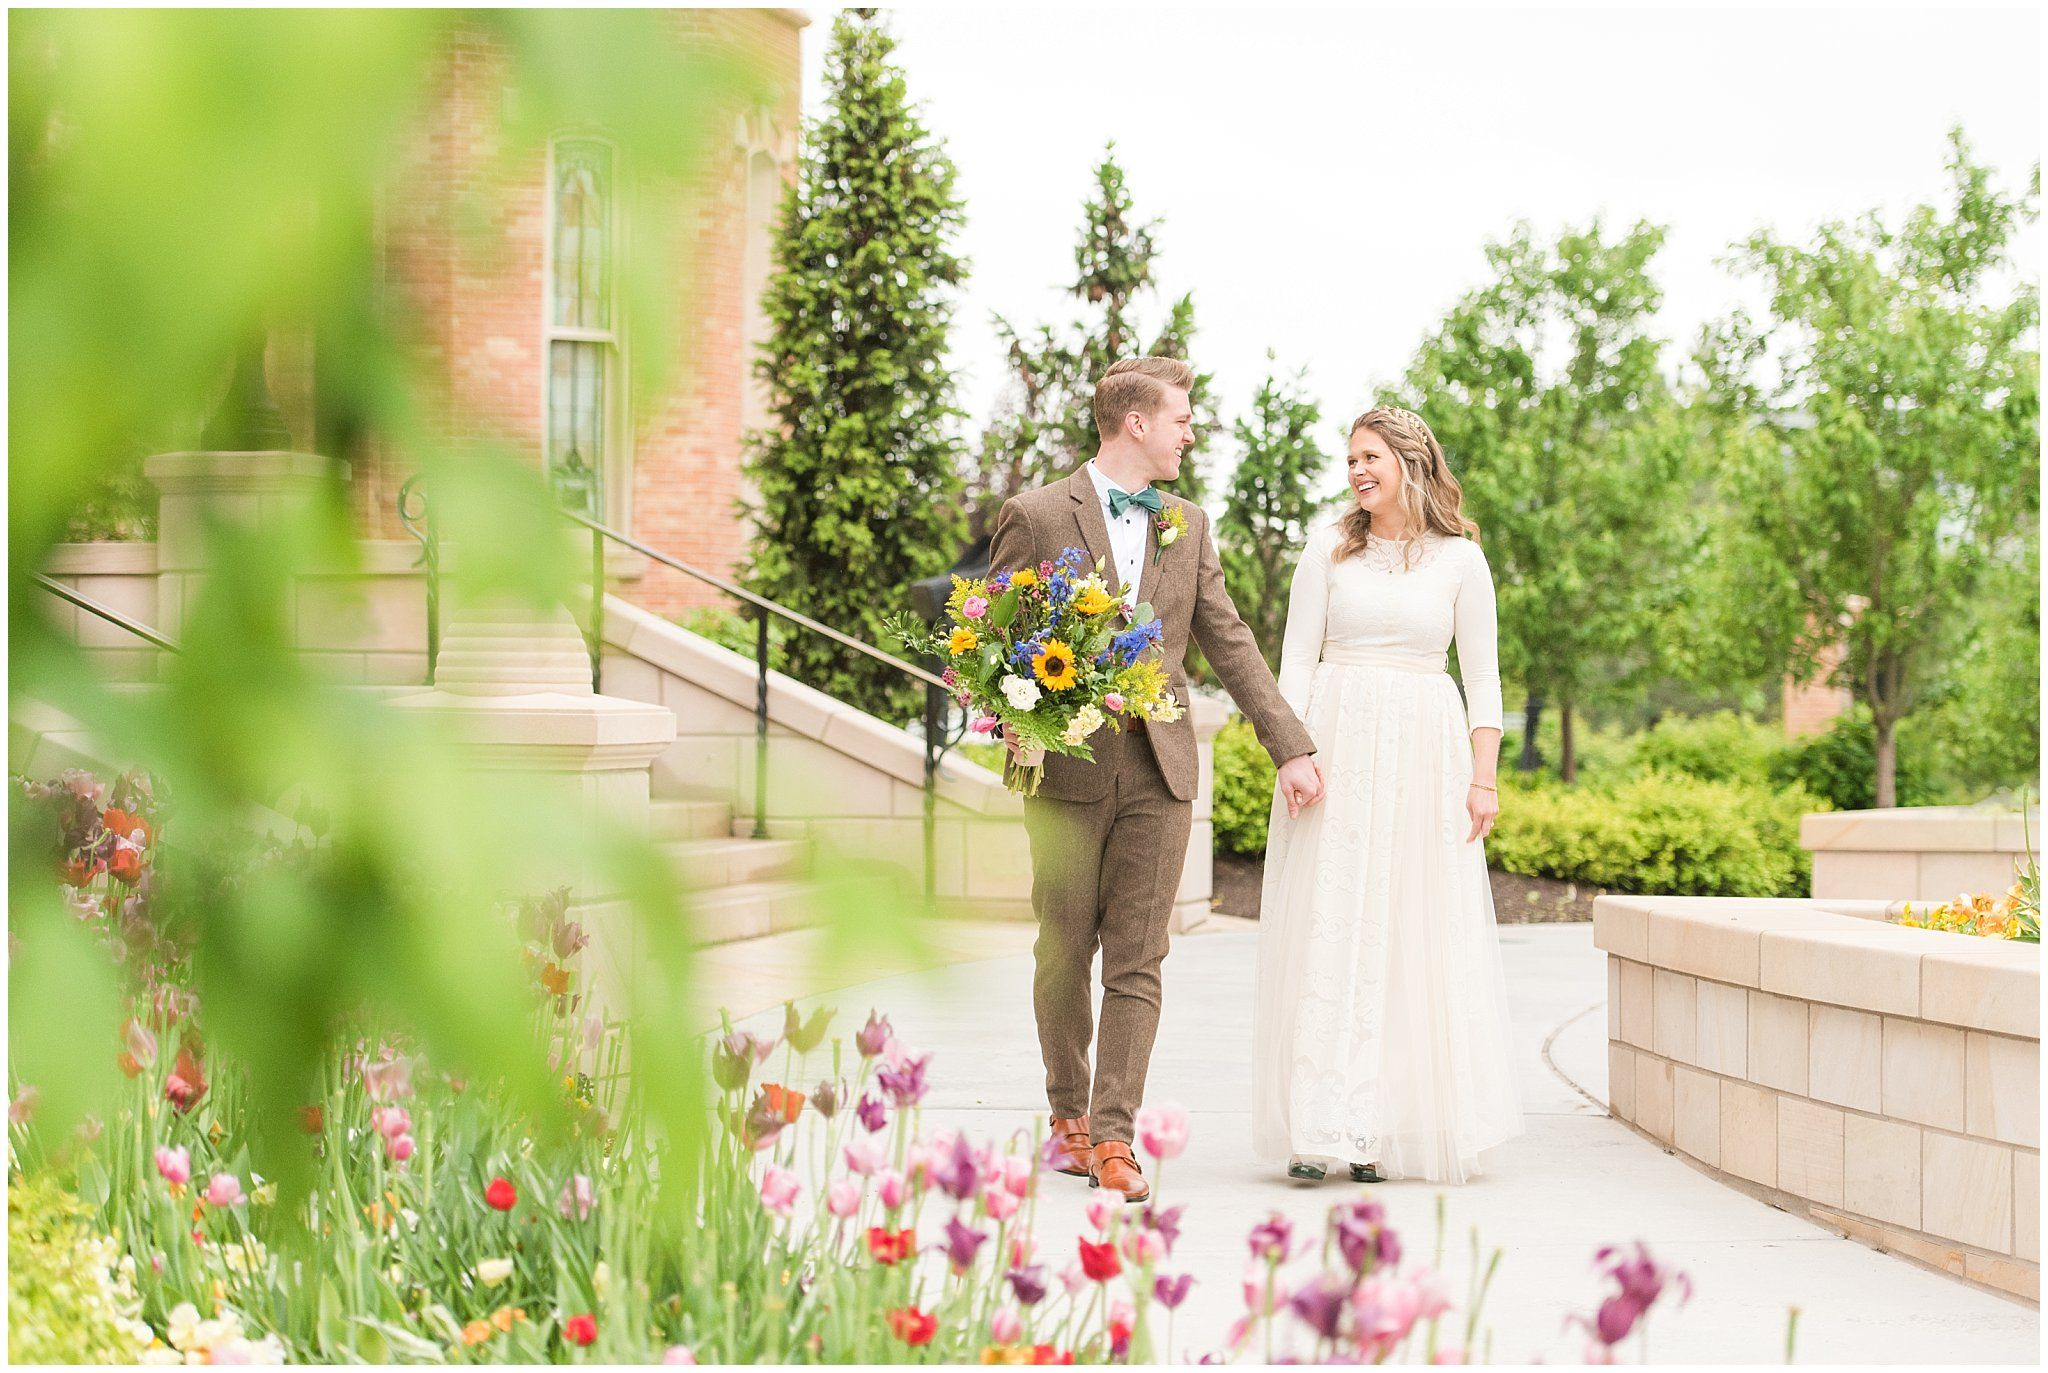 Pin on Bride and Groom Portrait Inspiration